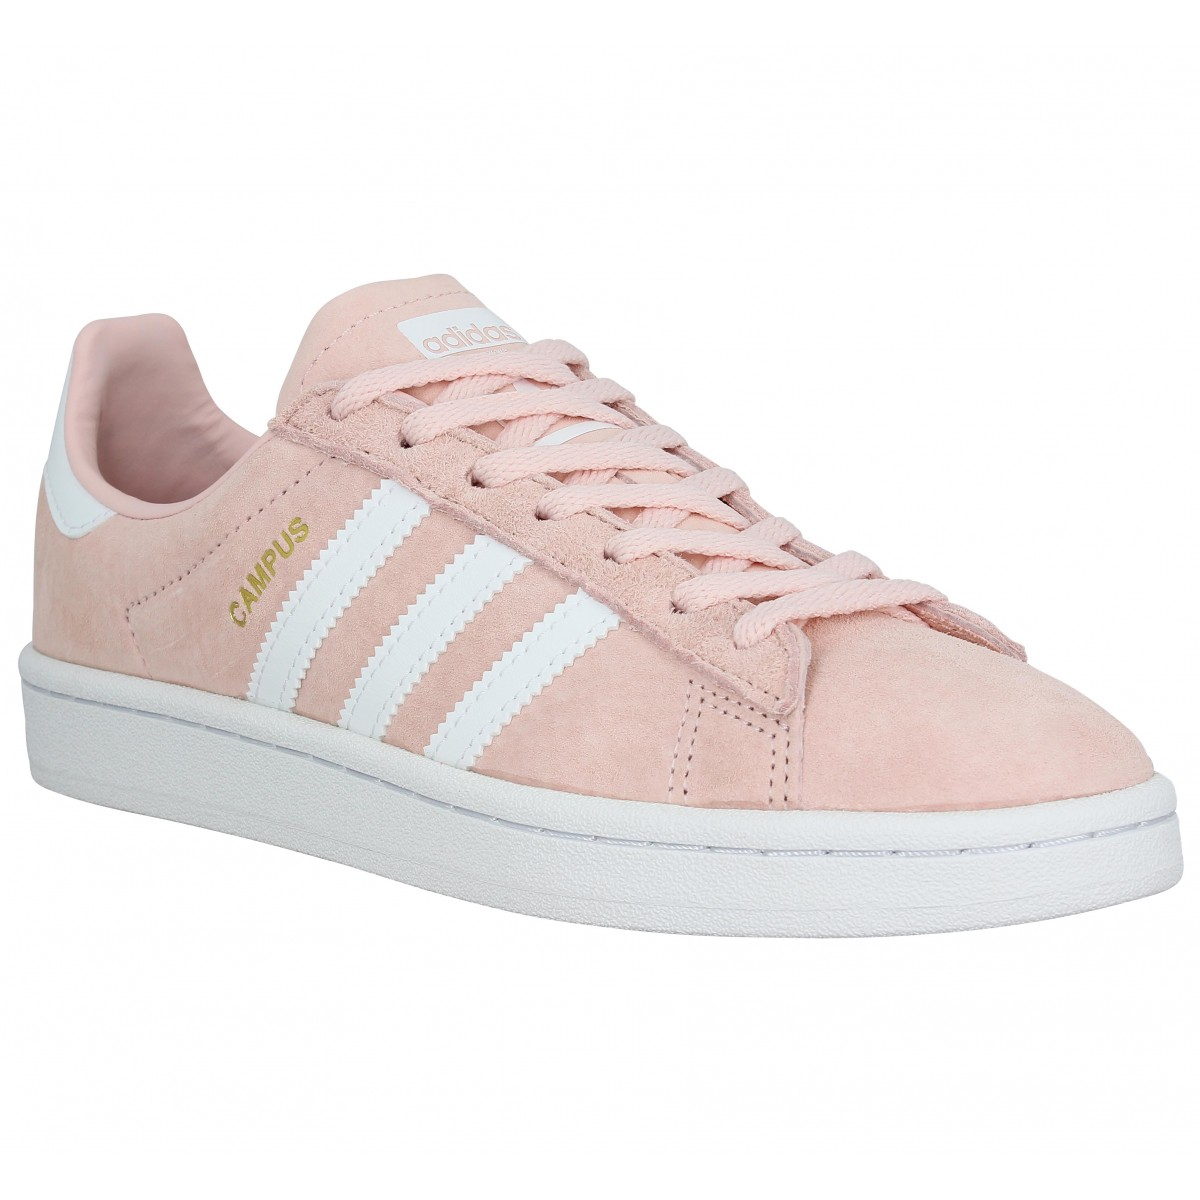 Baskets ADIDAS Campus velours Femme Rose